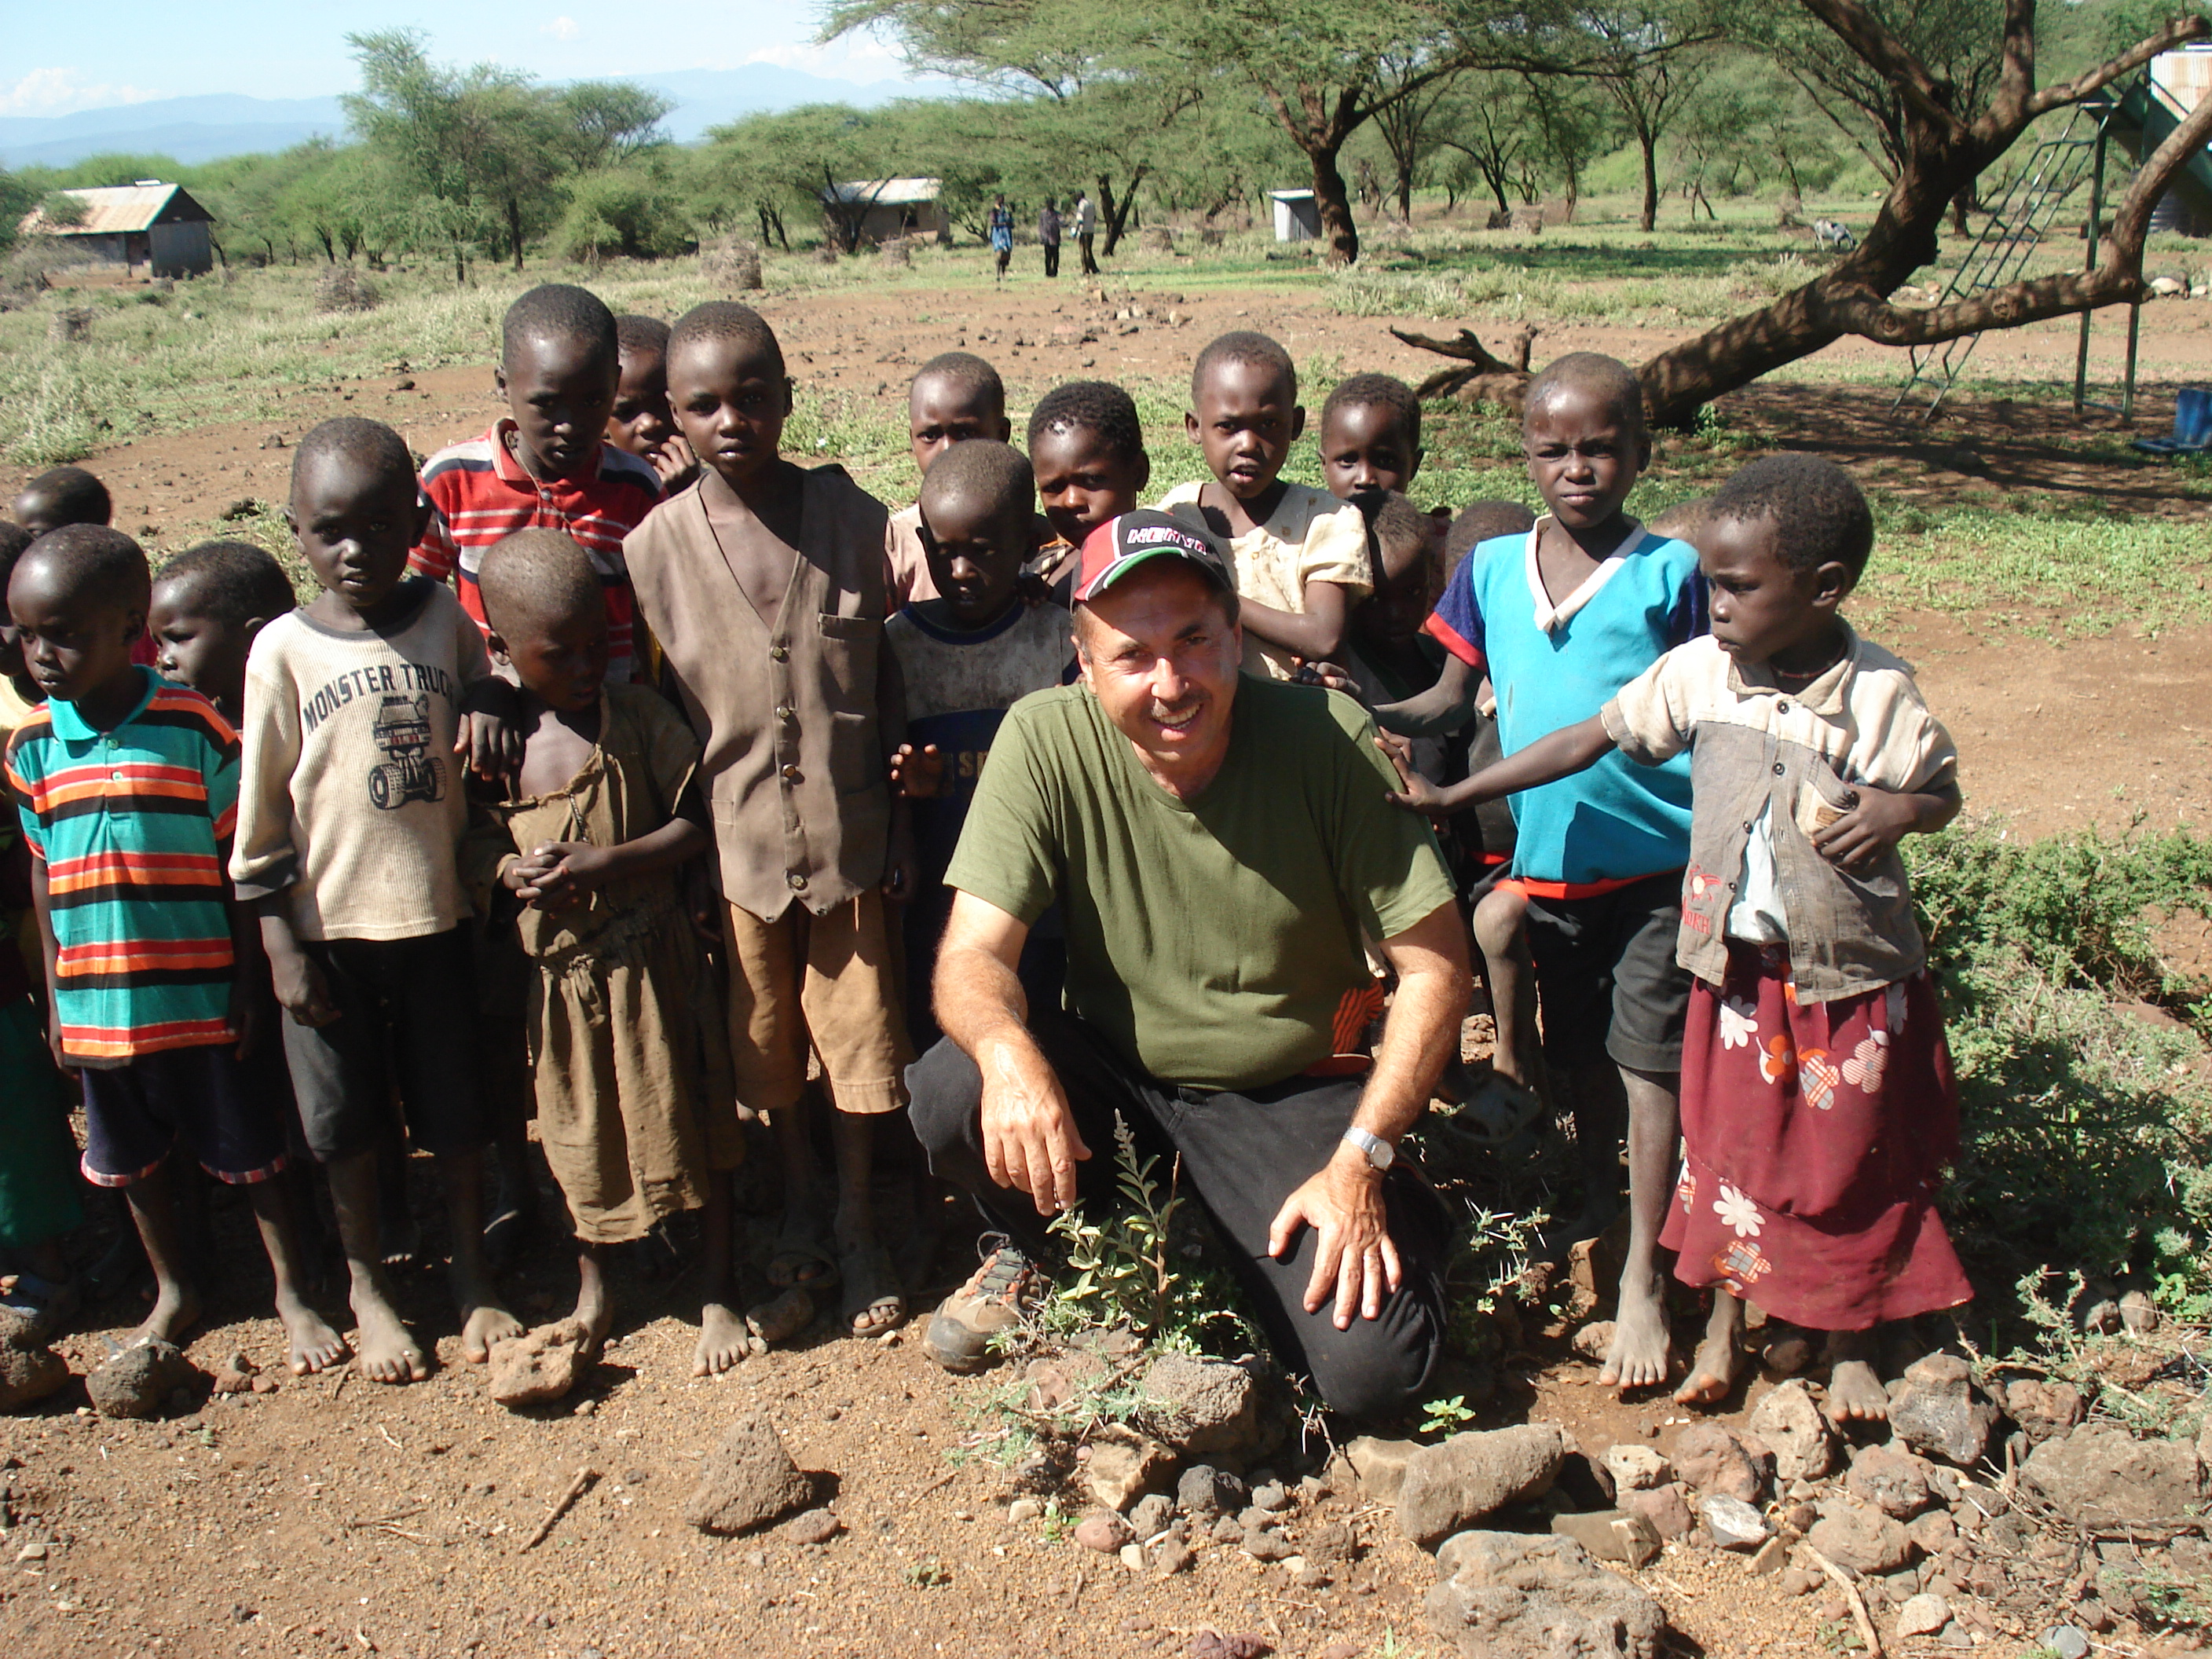 Children of Pokot